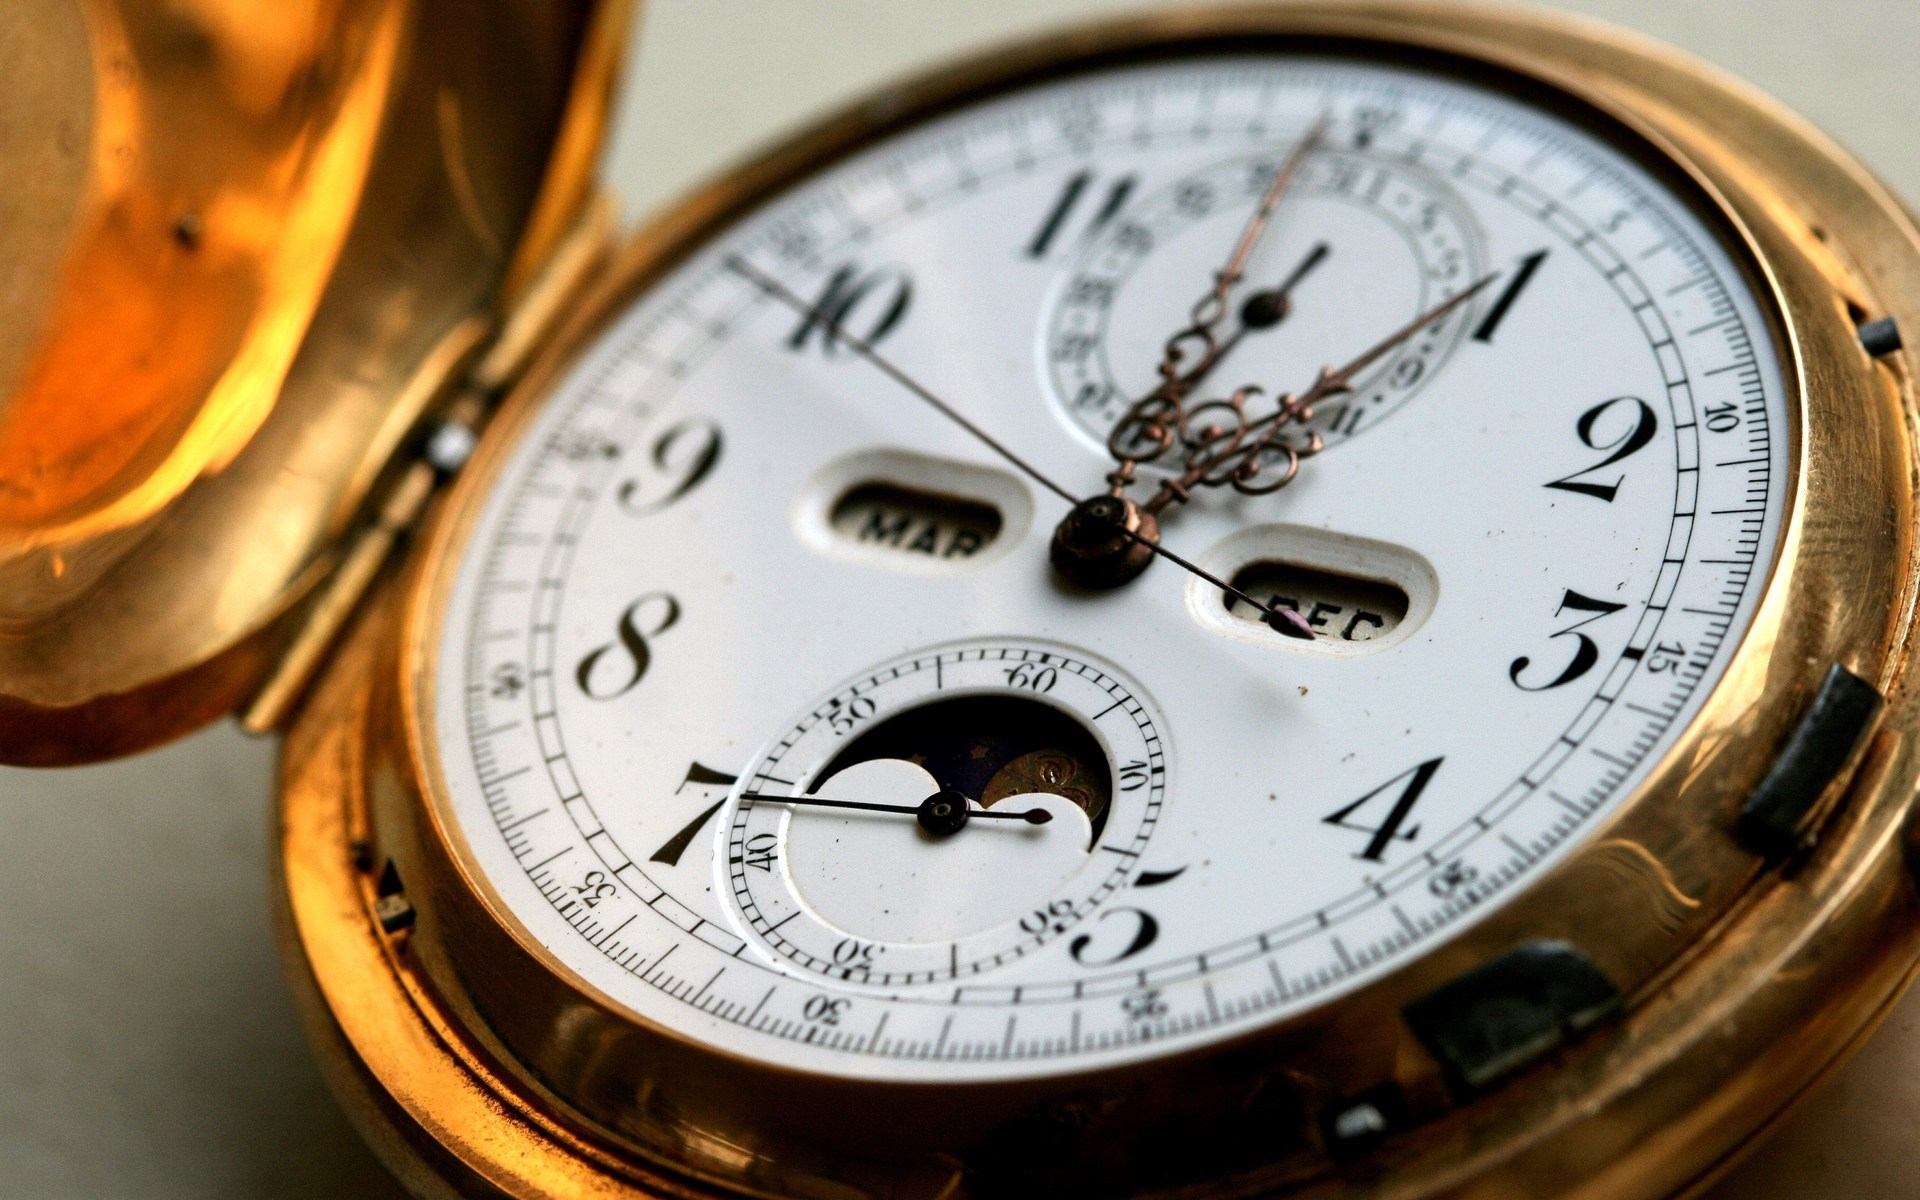 The Value of Time on Friday